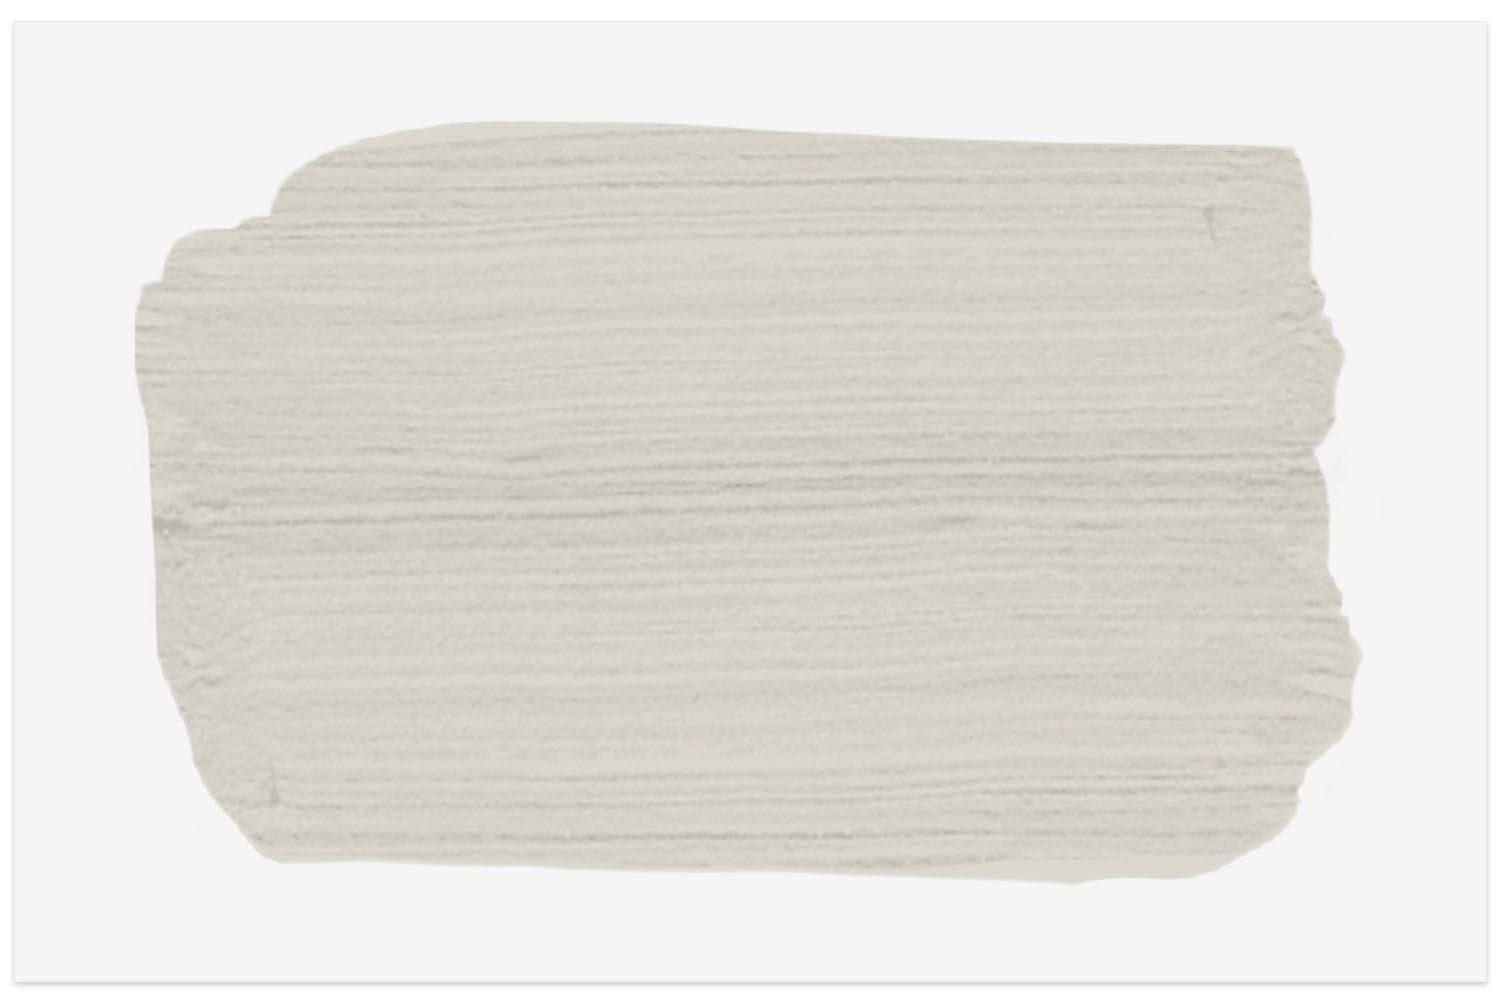 Light Pewter paint swatch from Benjamin Moore